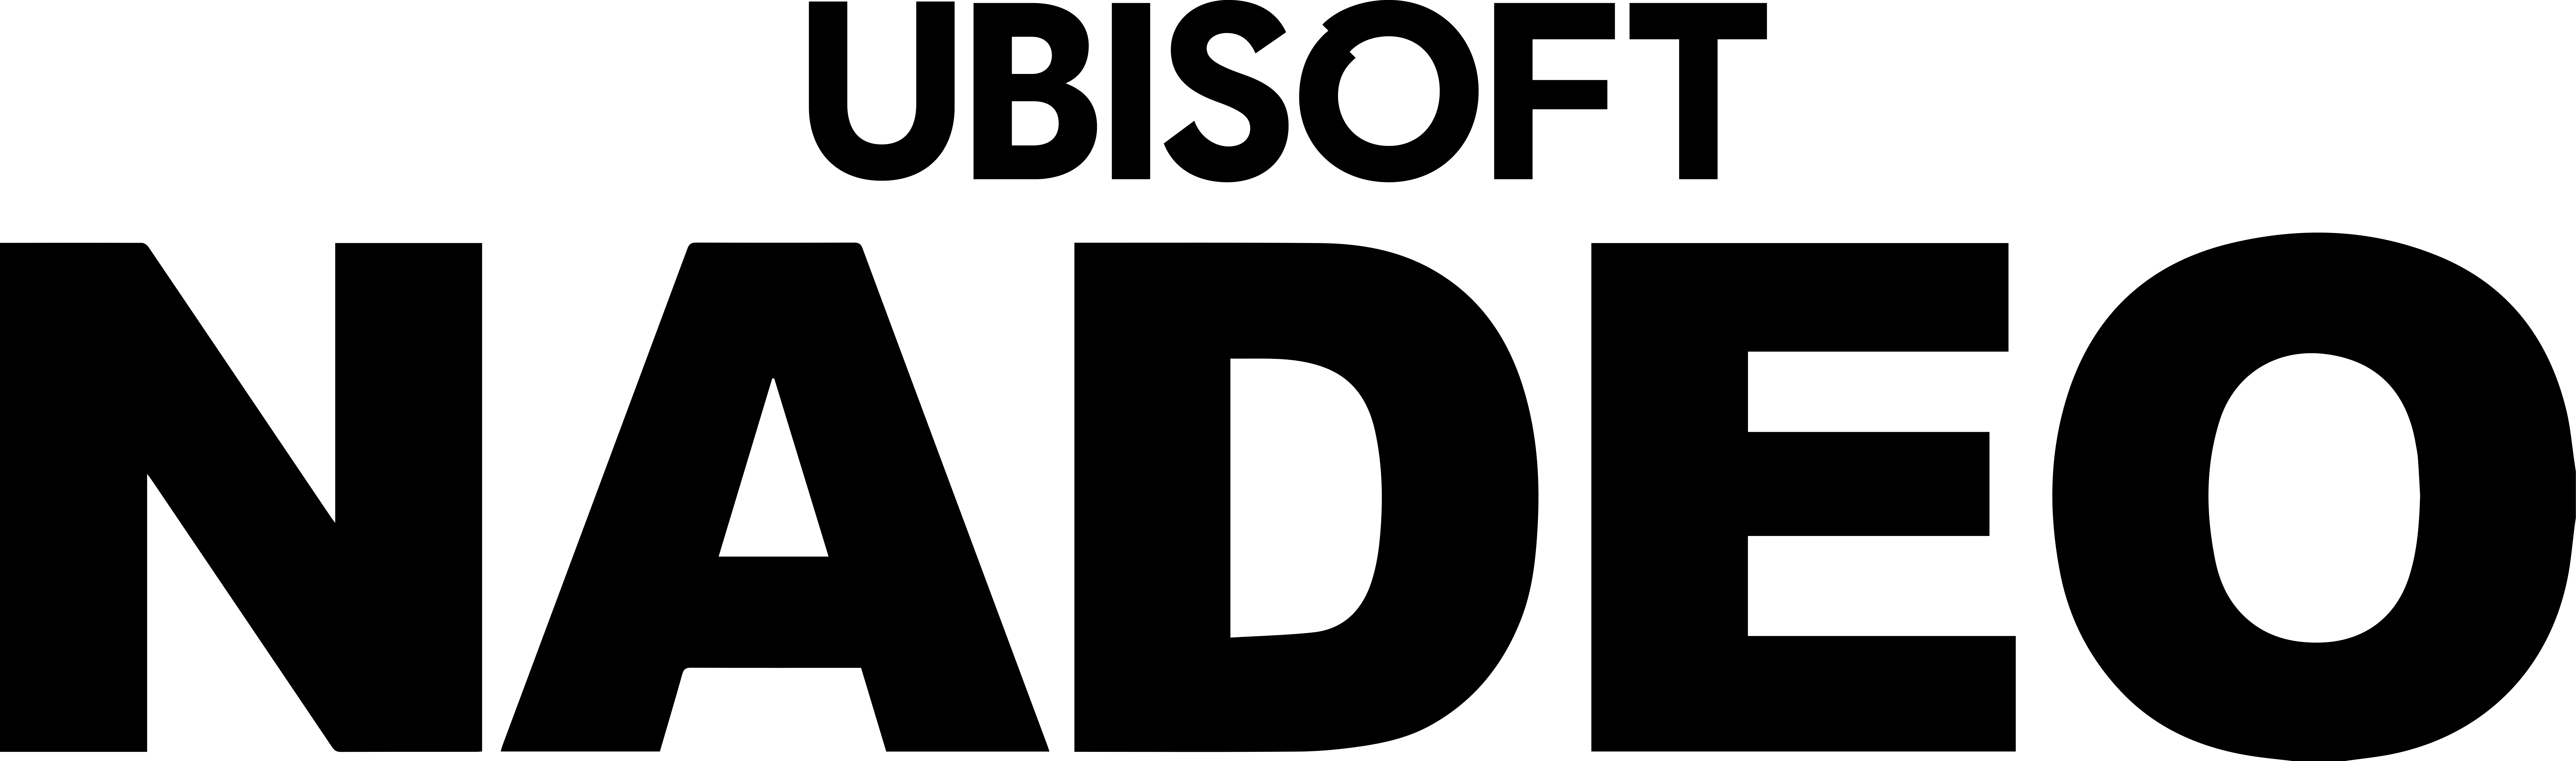 File Ubisoft Nadeo Black Png Wikimedia Commons